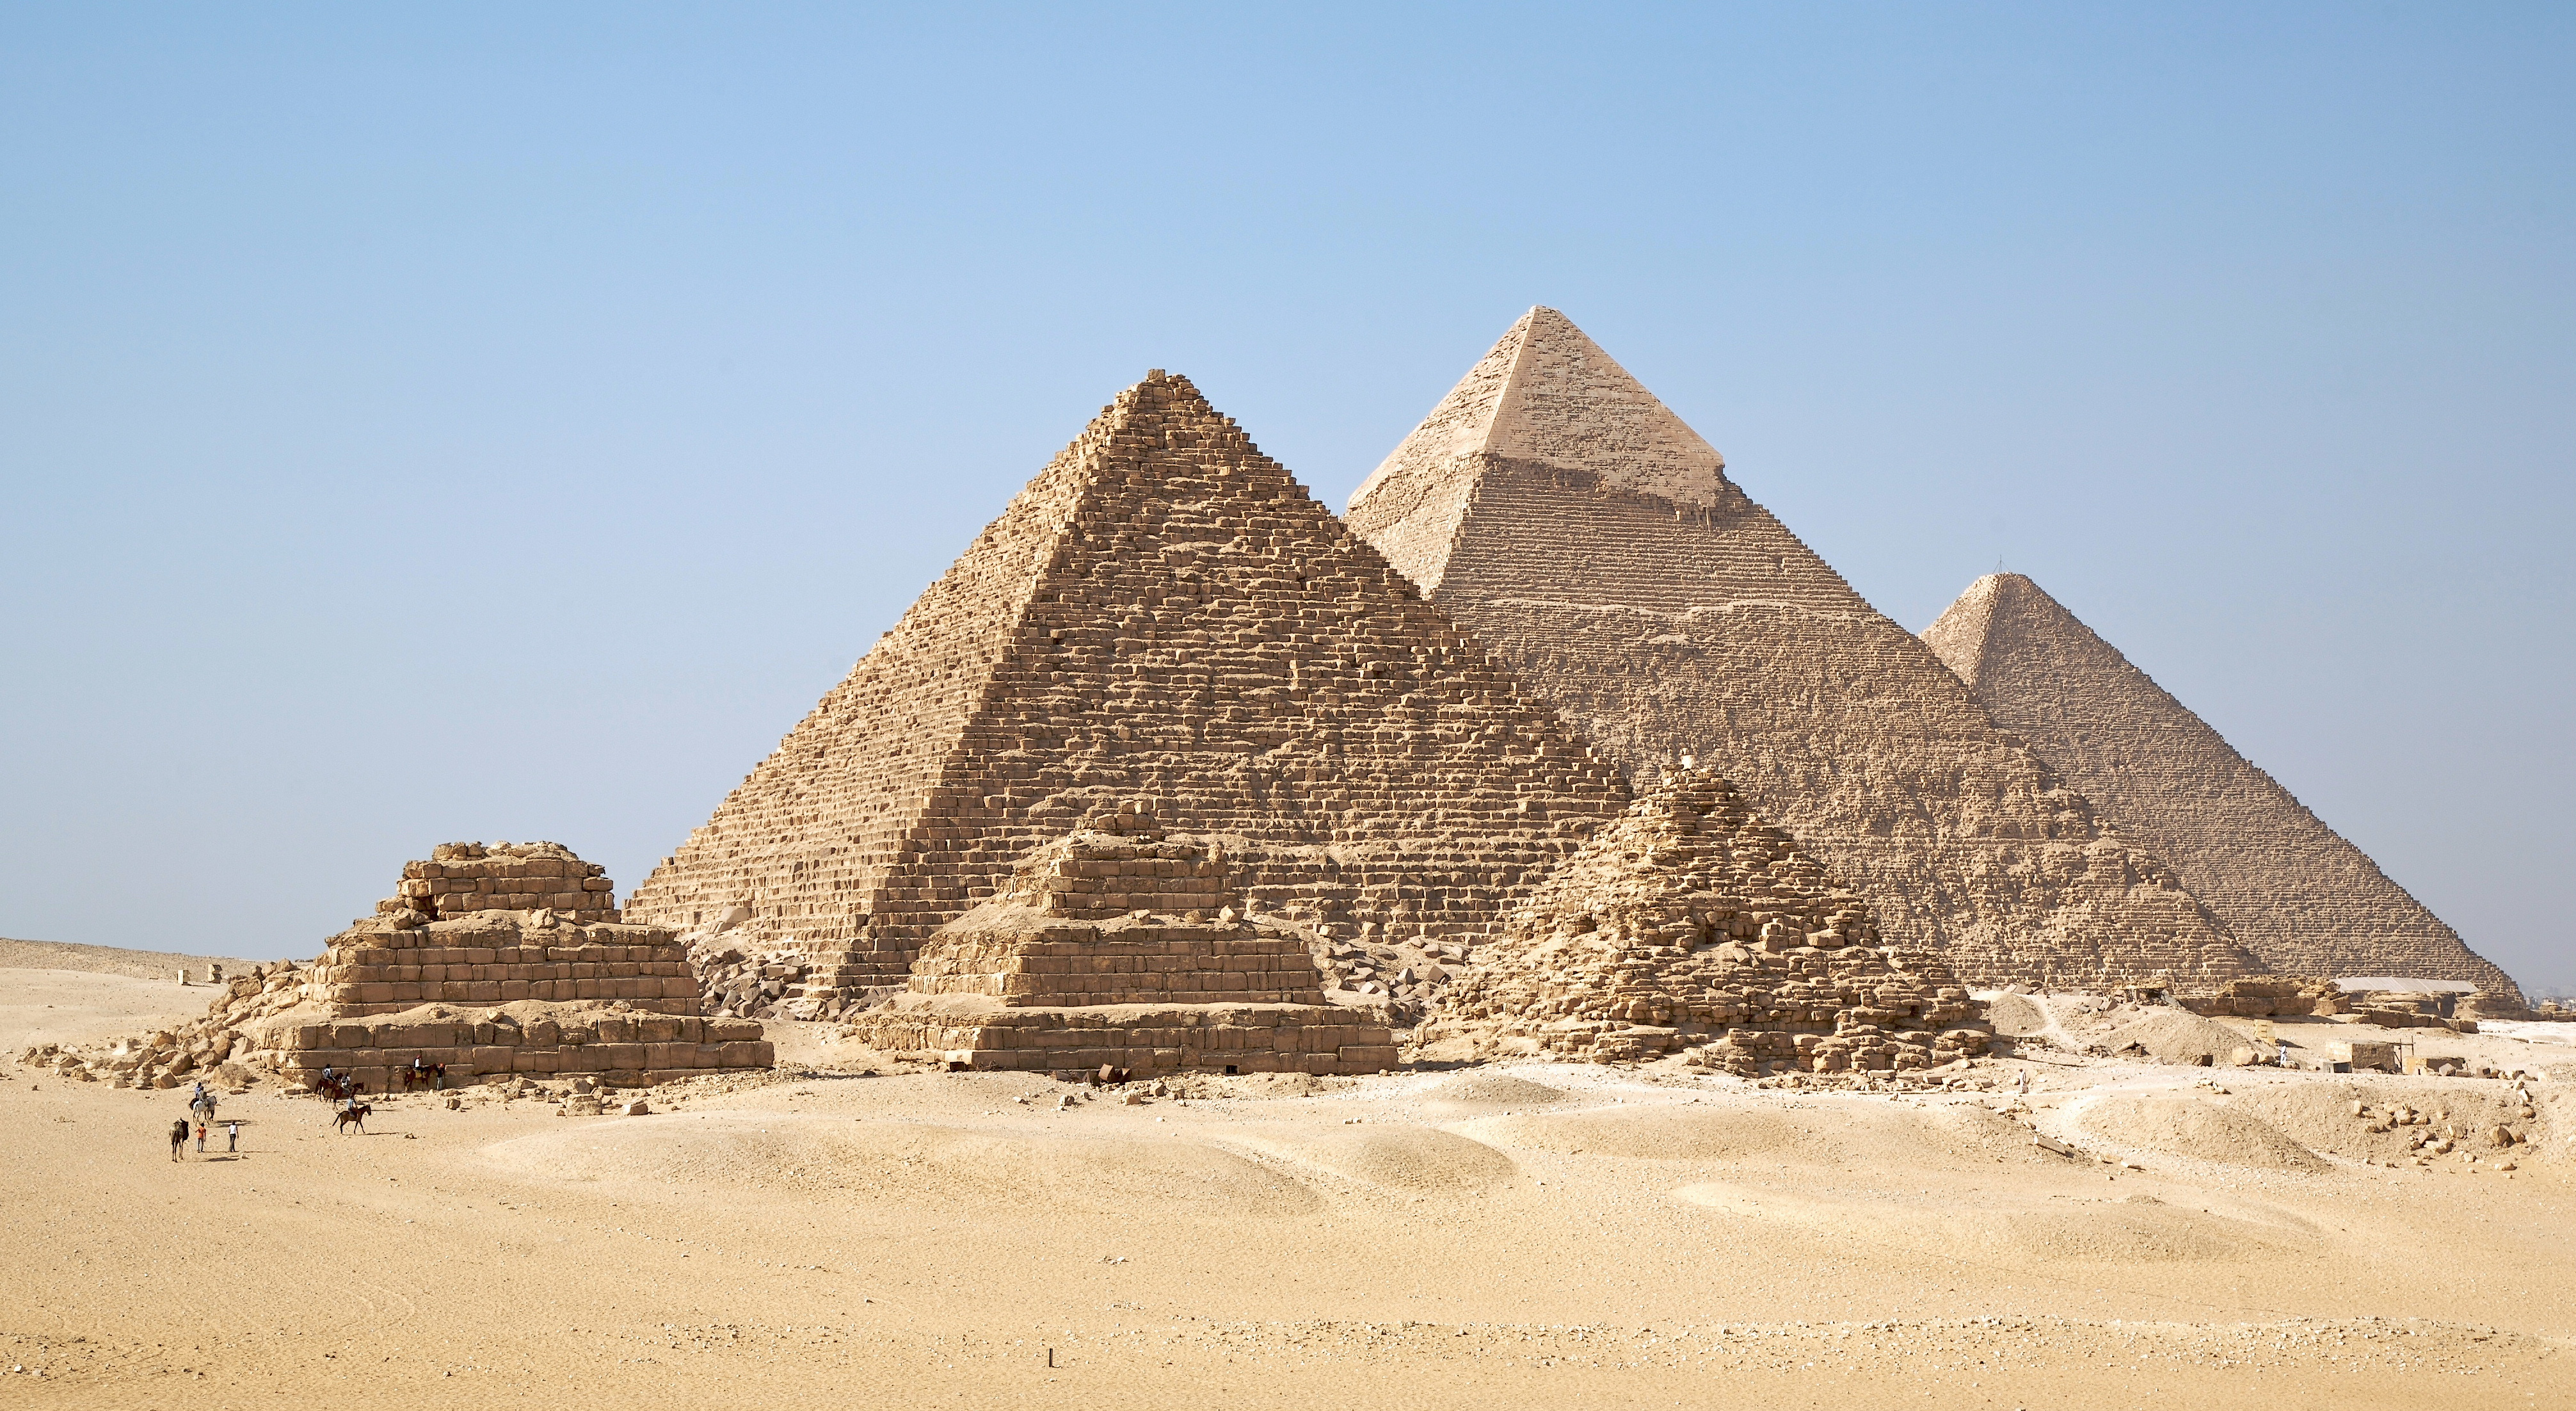 An analysis of great pyramids in egypt